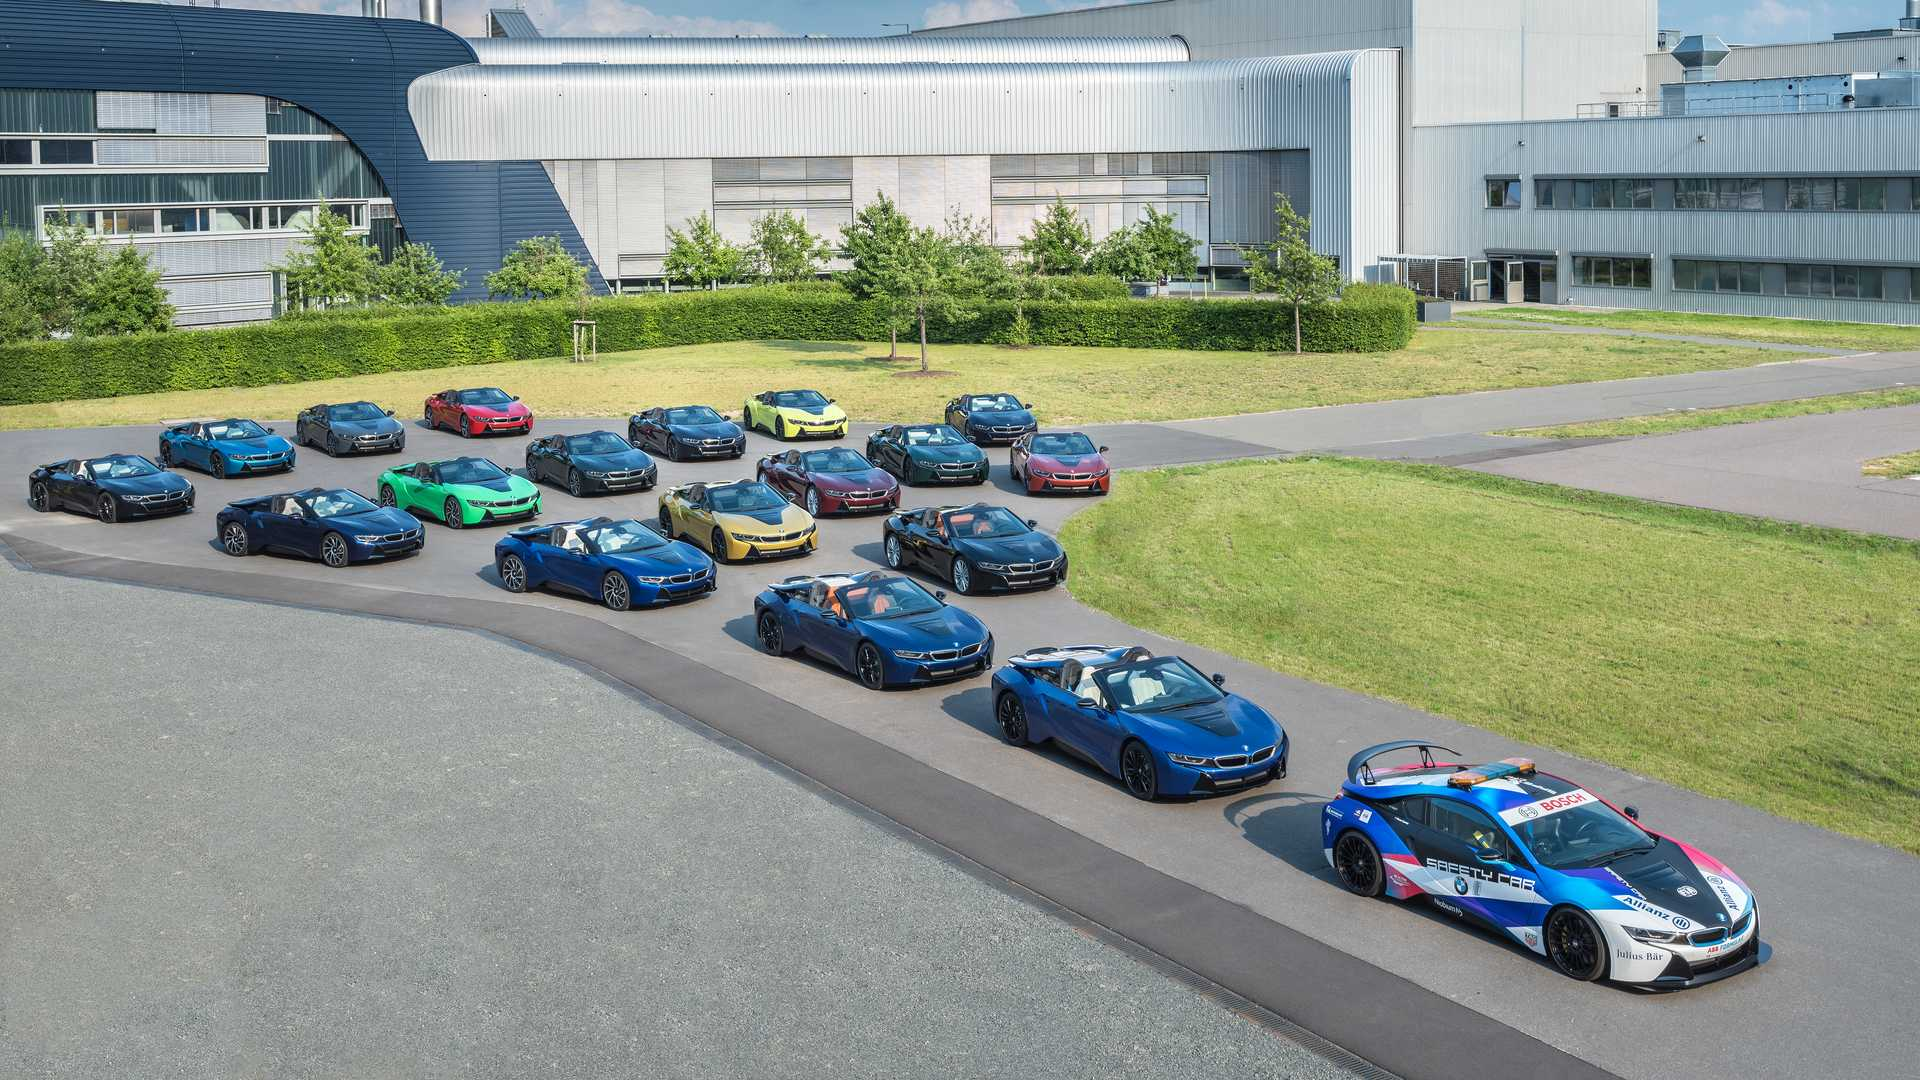 Bmw I8 Production Ends With 18 Uniquely Colored Cars